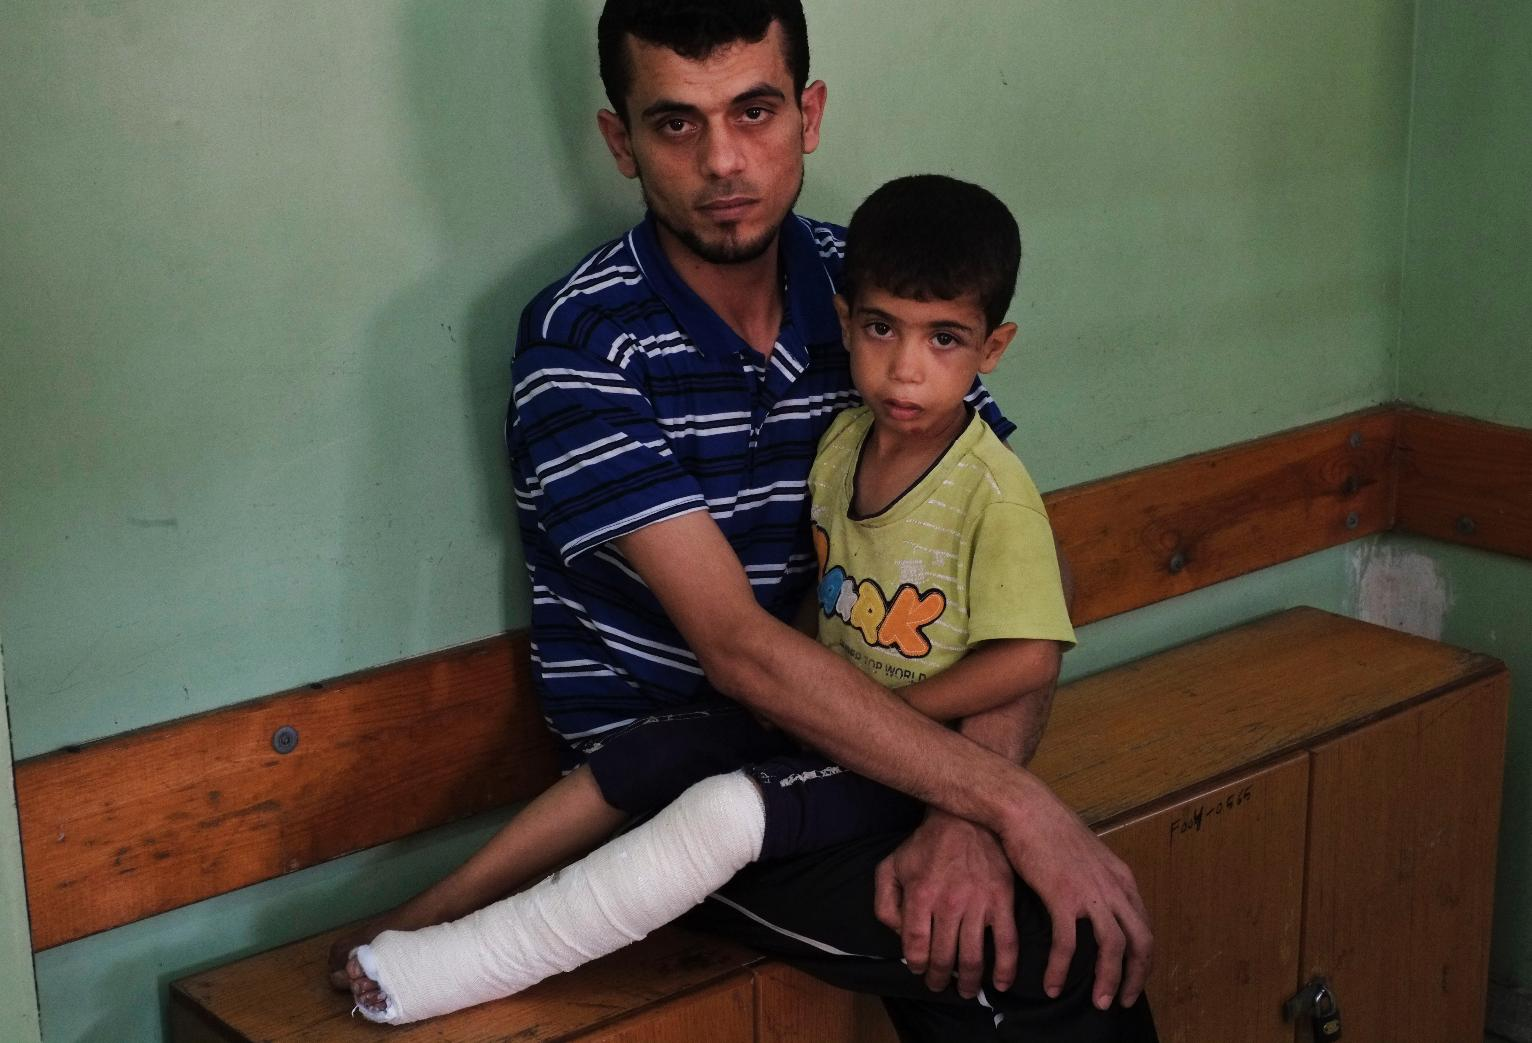 Hamas agrees to 24-hour holiday truce in Gaza war - US News